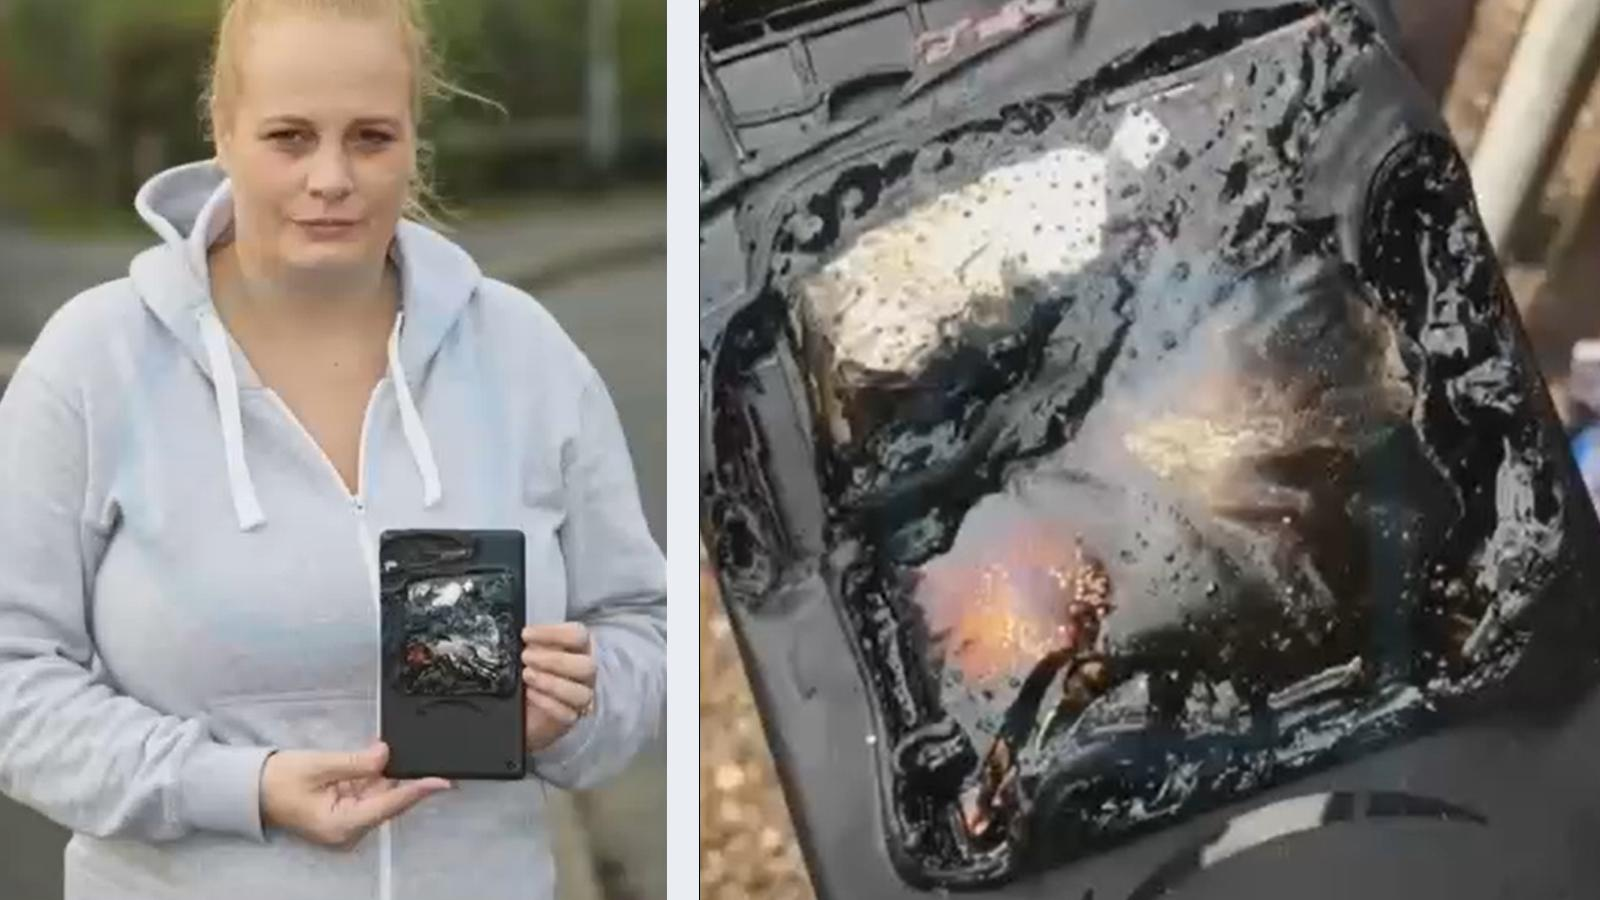 Lauren Adams hält ihr explodiertes Tablet in der Hand.